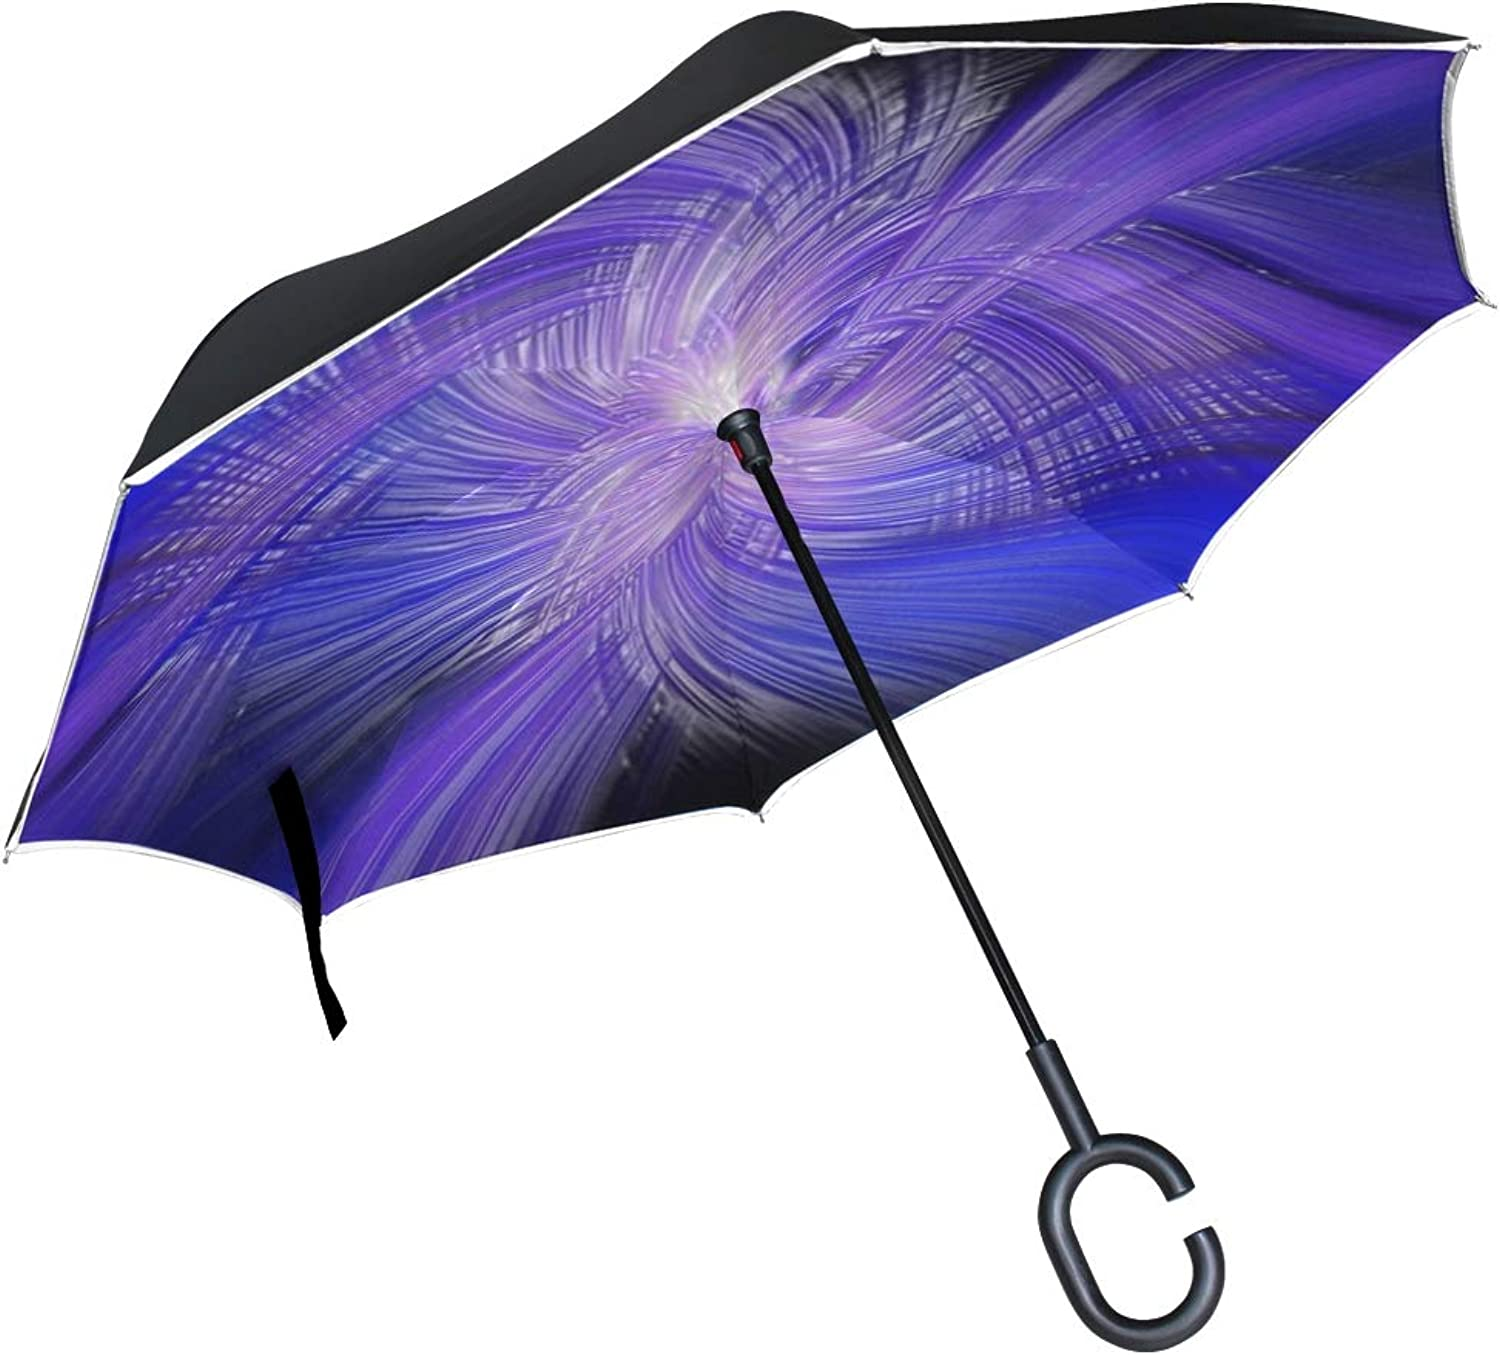 Double Layer Ingreened Braids colors Abstract Light Style Digital Paint Umbrellas Reverse Folding Umbrella Windproof Uv Predection Big Straight Umbrella for Car Rain Outdoor with CShaped Handle